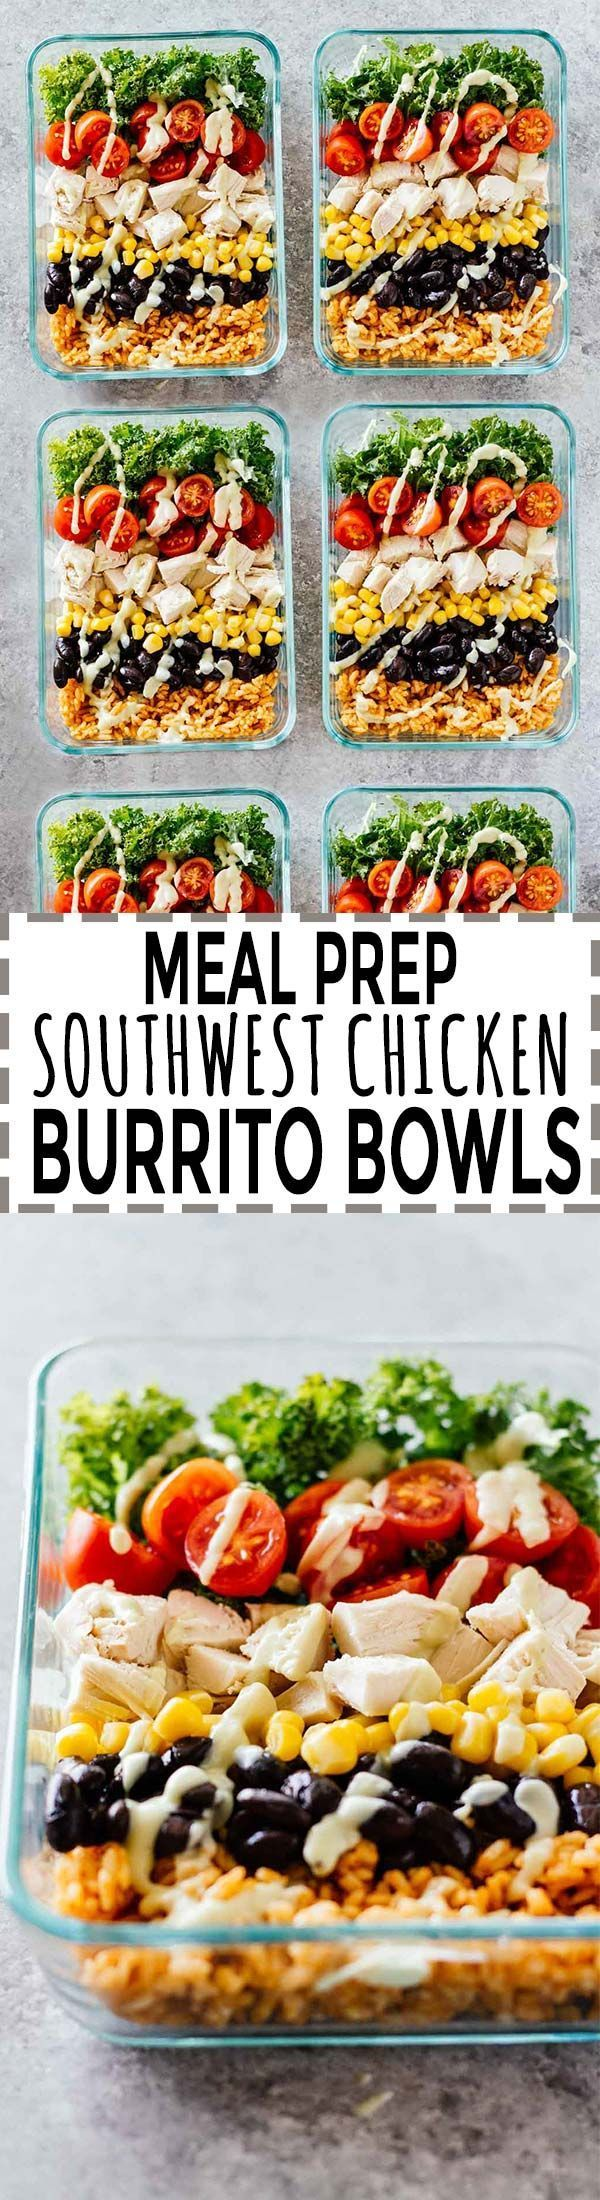 Prep Southwest Chicken Burrito Bowls Meal Prep Southwest Chicken Burrito Bowls! SO delicious and easy to make. Gluten-free and perfect for a lunch on-the-go!Chicken (disambiguation)  Chicken is a type of domesticated bird.   Chicken, chickens, or the chicken may also refer to: